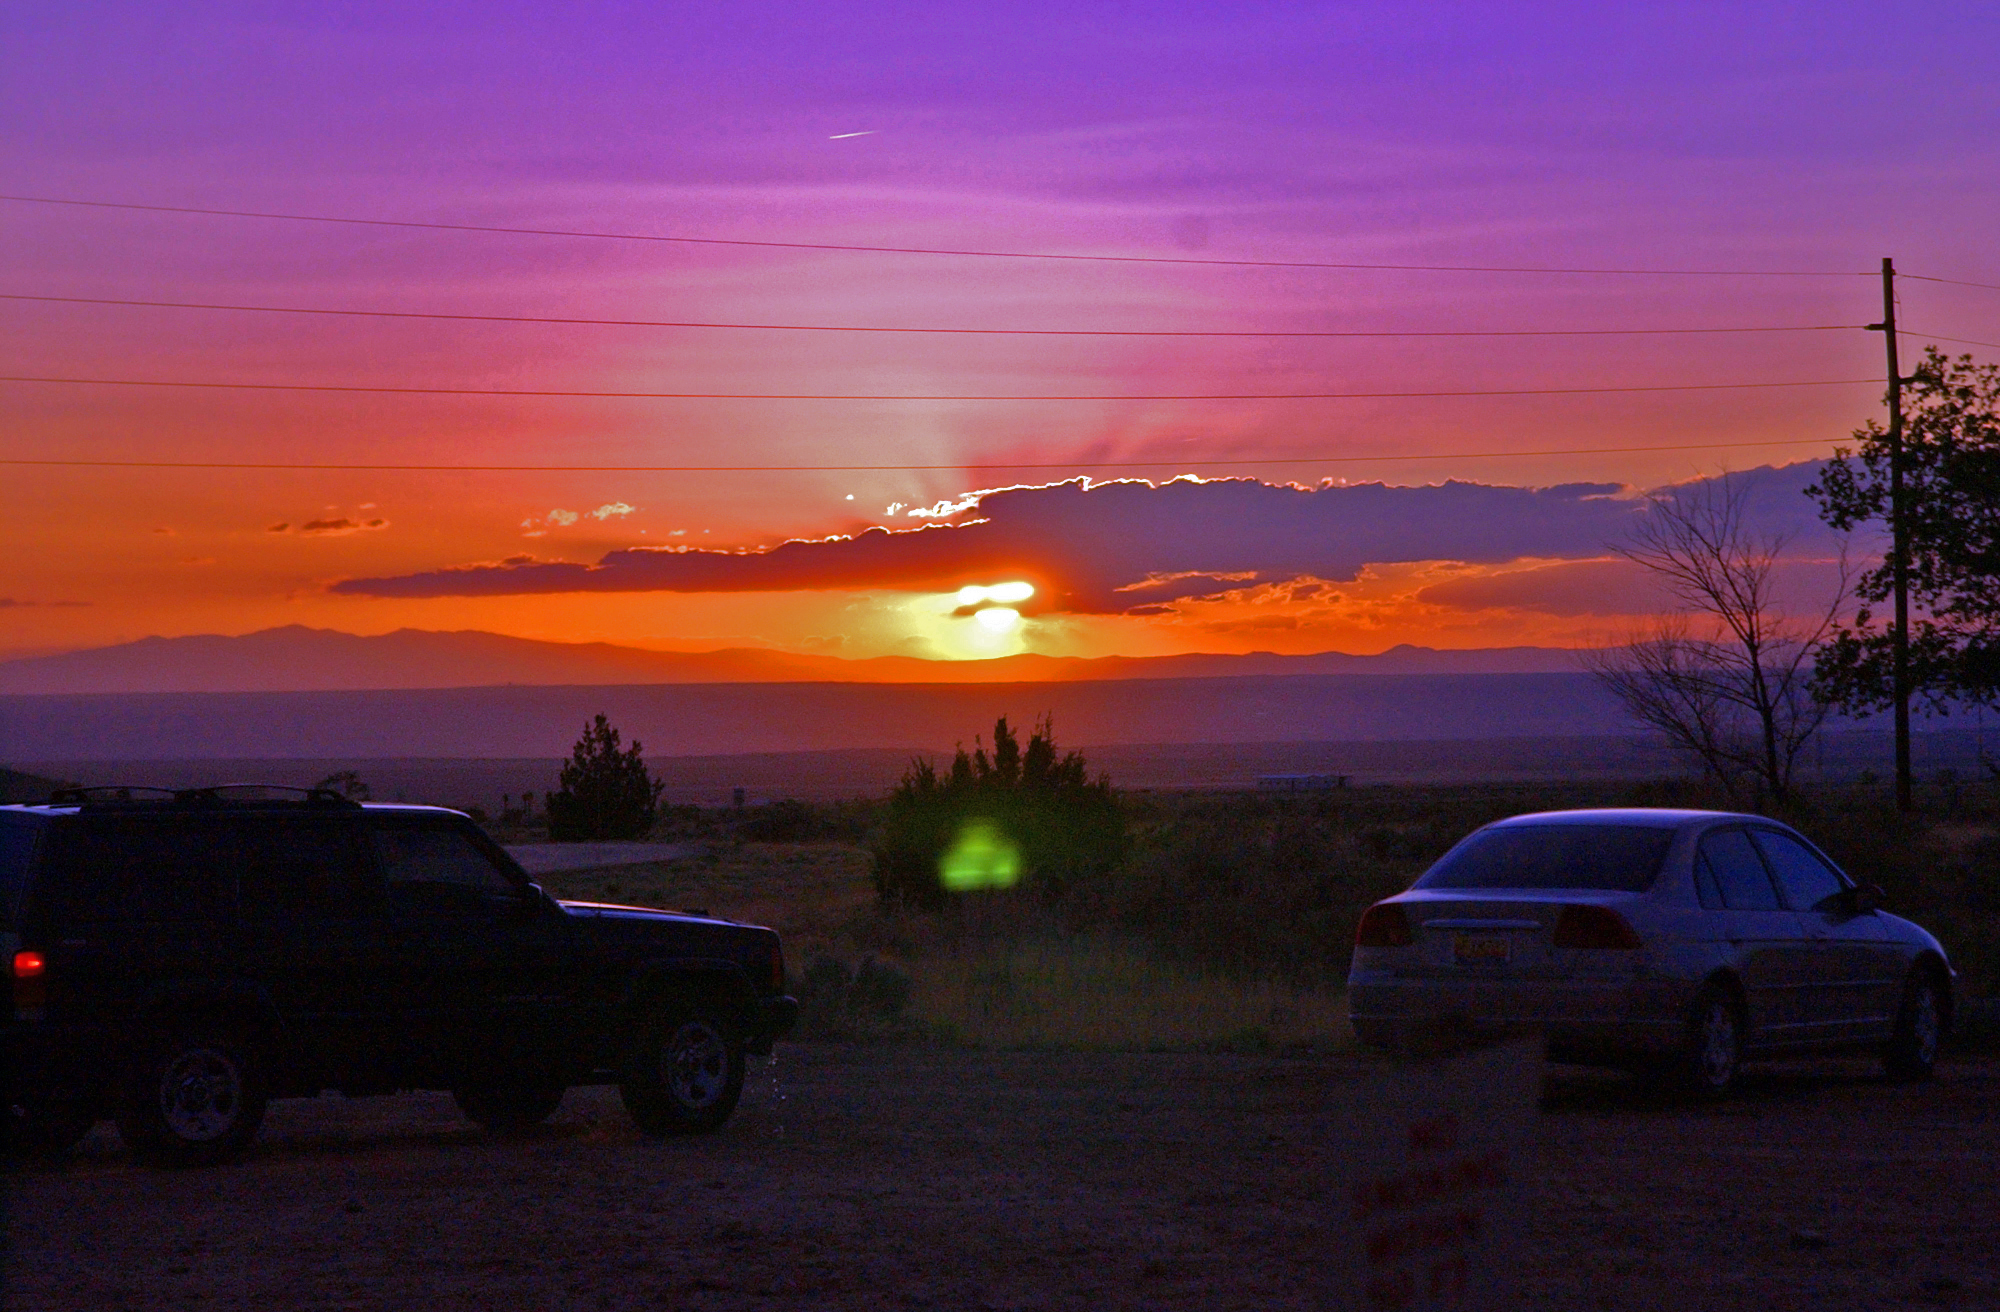 A typical high desert sunset at Kirtland Air Force Base, New Mexico.